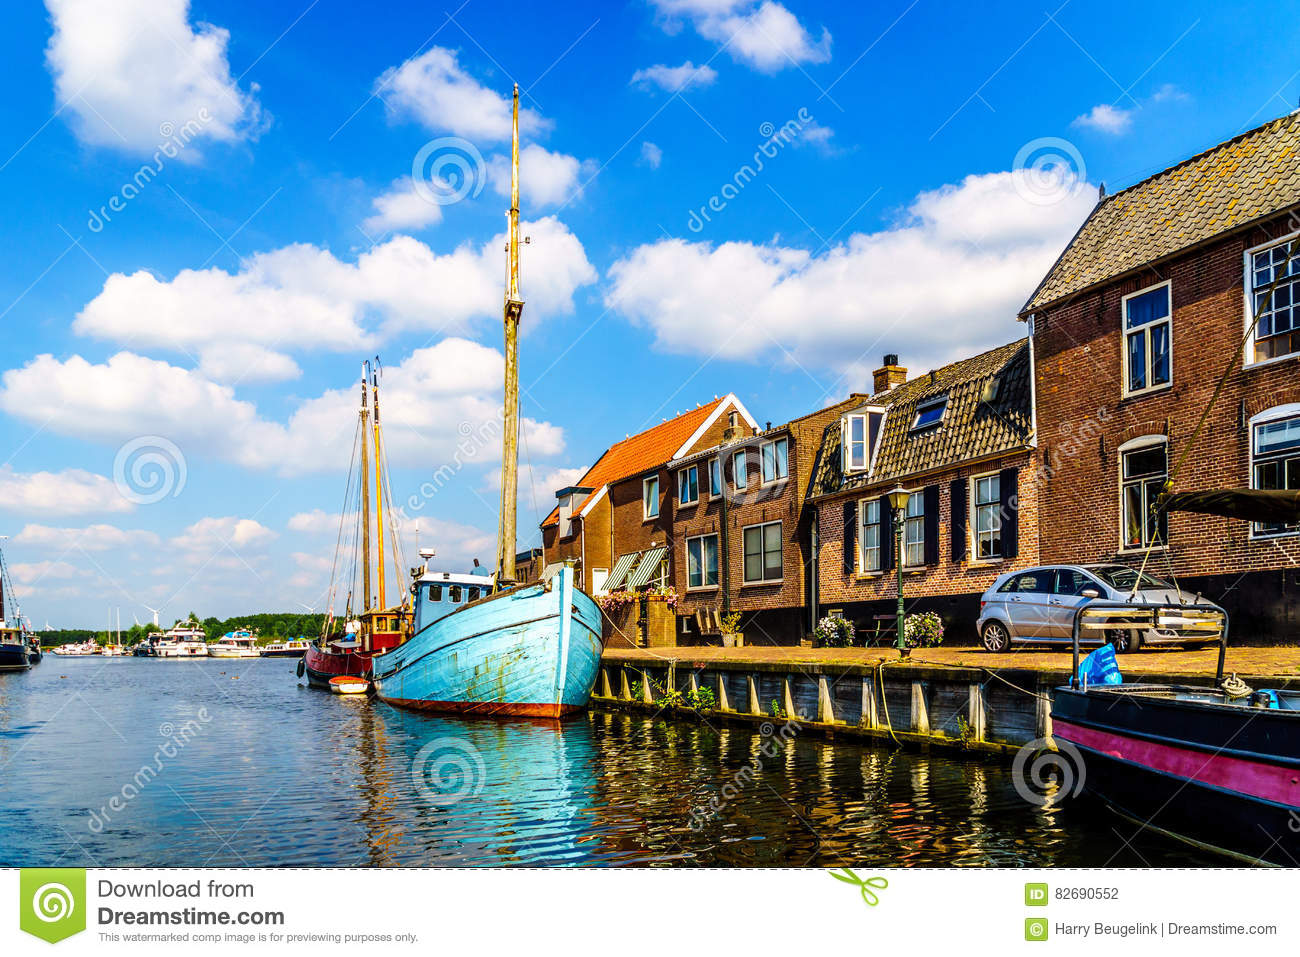 Entrance to the Harbor of the Historic Fishing Village of Bunschoten-Spakenburg